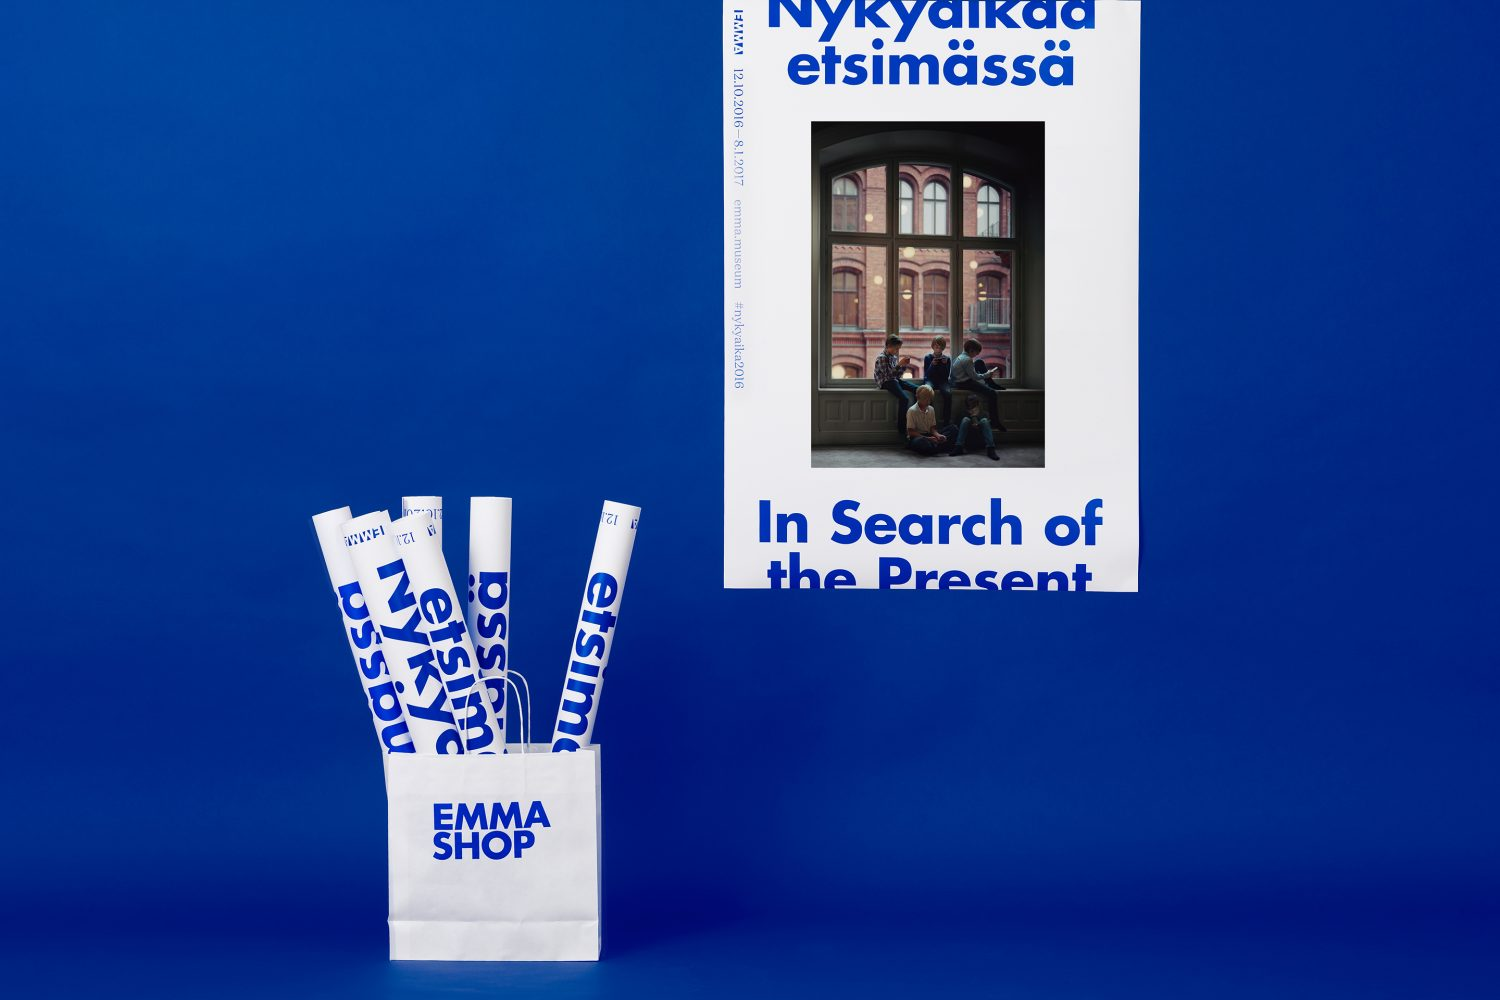 Brand identity and posters designed by Helsinki-based Werklig for EMMA exhibition series In Search Of The Present